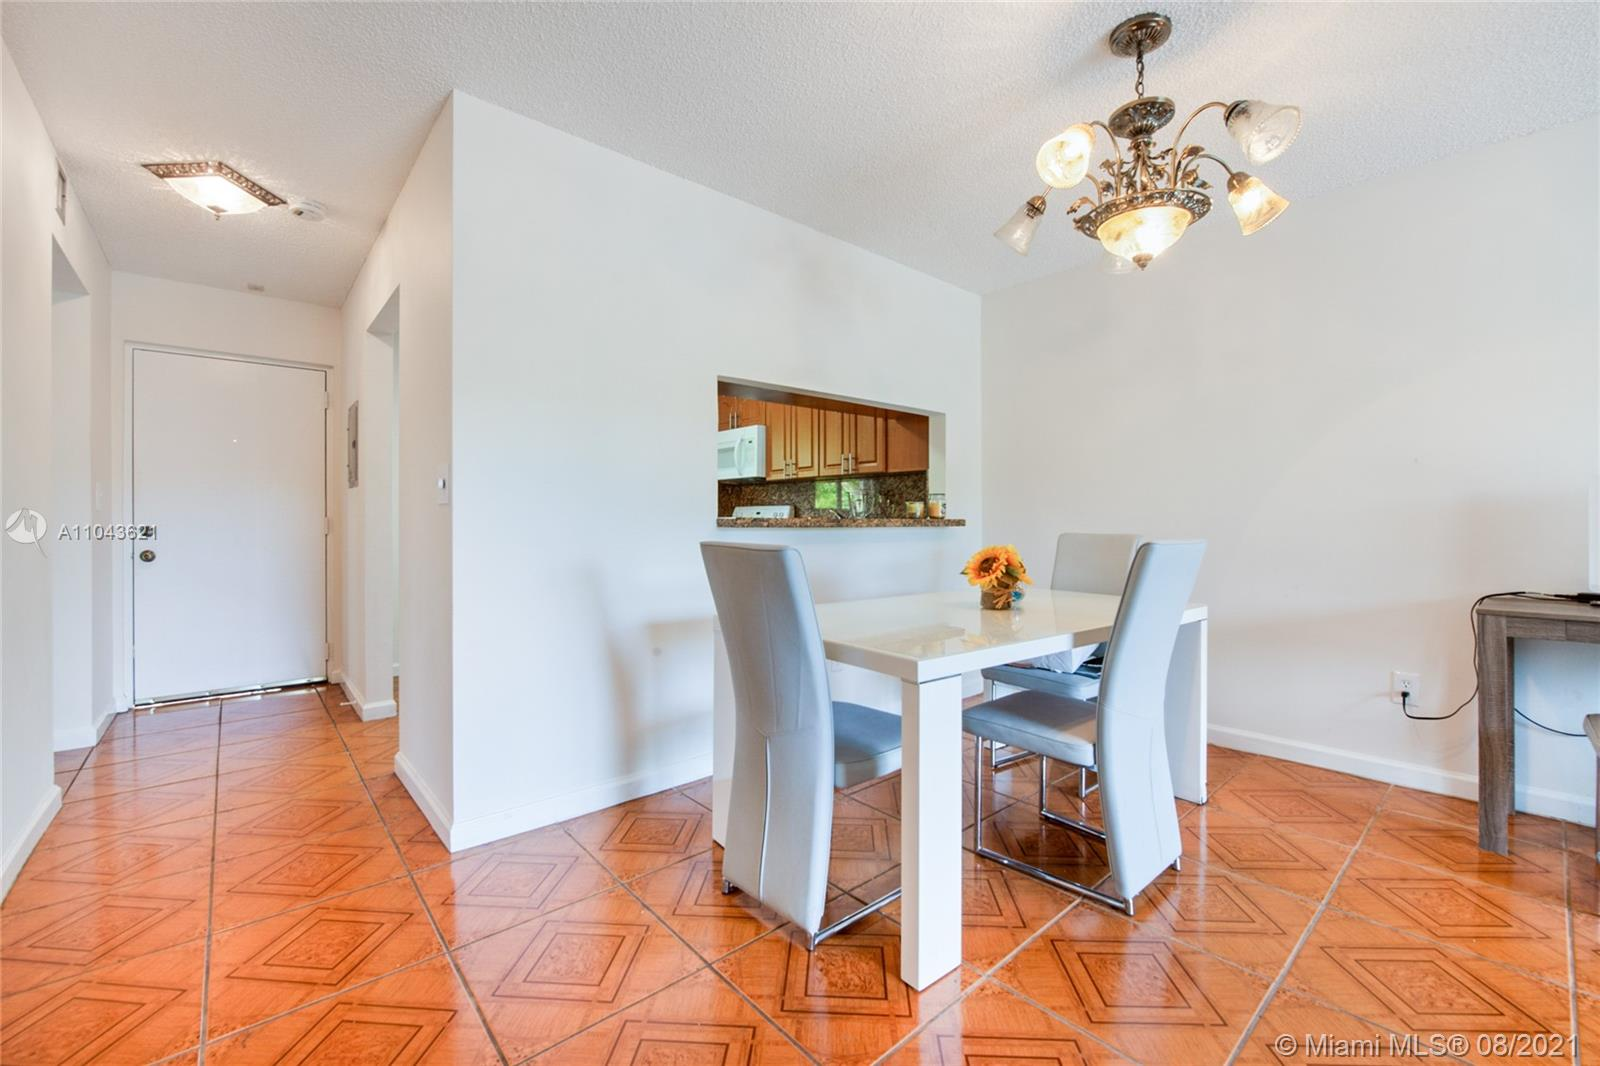 Down payment only 5% and low maintenance (270 dollars monthly)are the watchwords for this apartment. If you are looking for a condominium safe, quiet, peaceful and well organized, close to Metrorail (about 15 minutes from Dadeland Mall station to Brickell), Palmetto Expy, supermarkets and Dadeland Mall you are into the right place.The apartment is 1bed/1bath, has Impact windows and everything is well maintained and working properly. The kitchen is updated and has a window. Direct access to the bathroom from both the bedroom and the living area. Walk in closet plus additional closets. In the entertainment area: 4 swimming pools, tennis courts, gym (one for women and one for men) and the clubhouse which can be rented for parties.